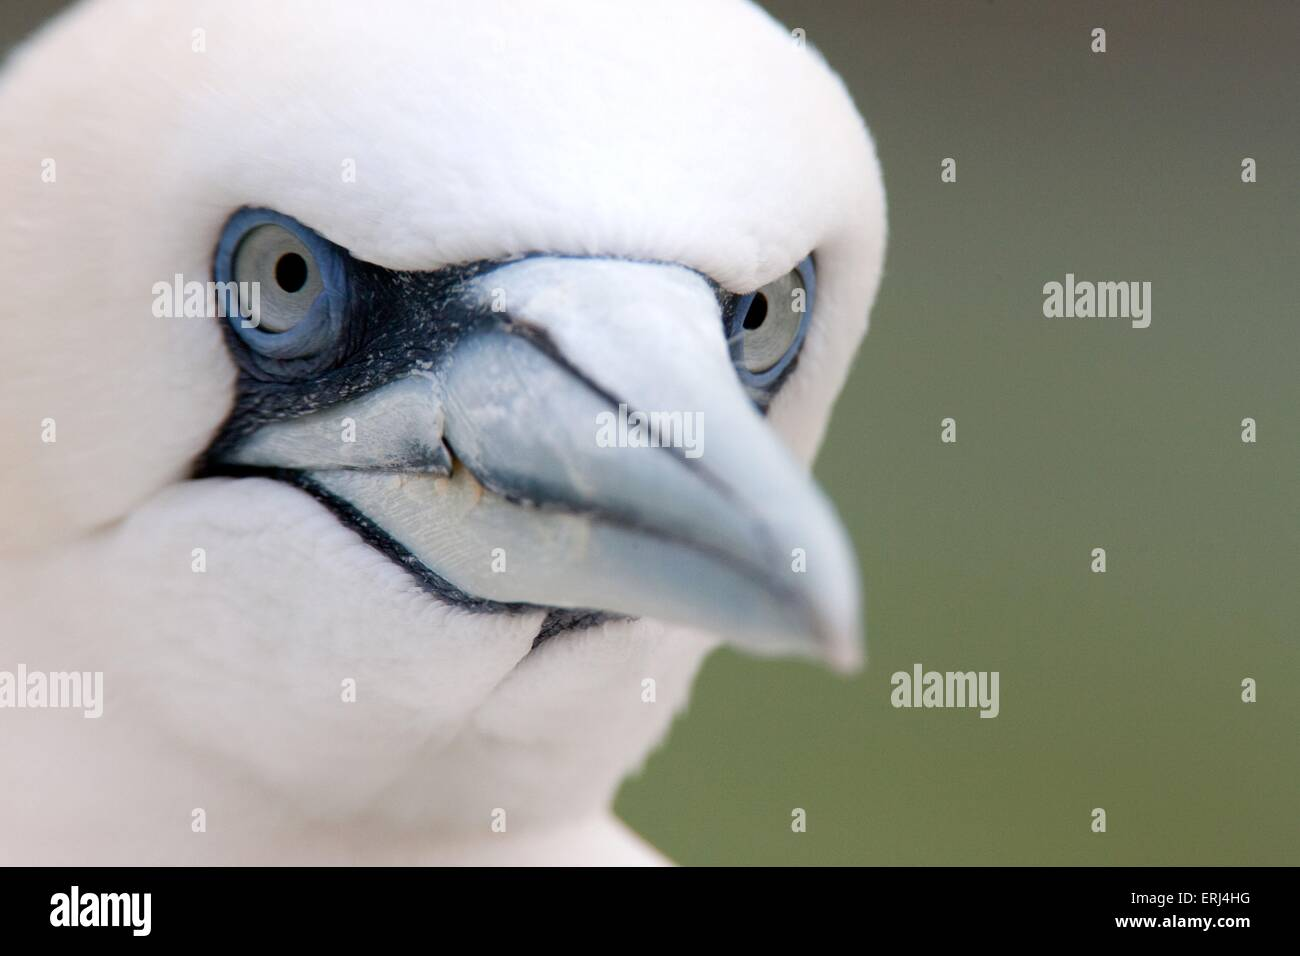 northern gannet - Stock Image